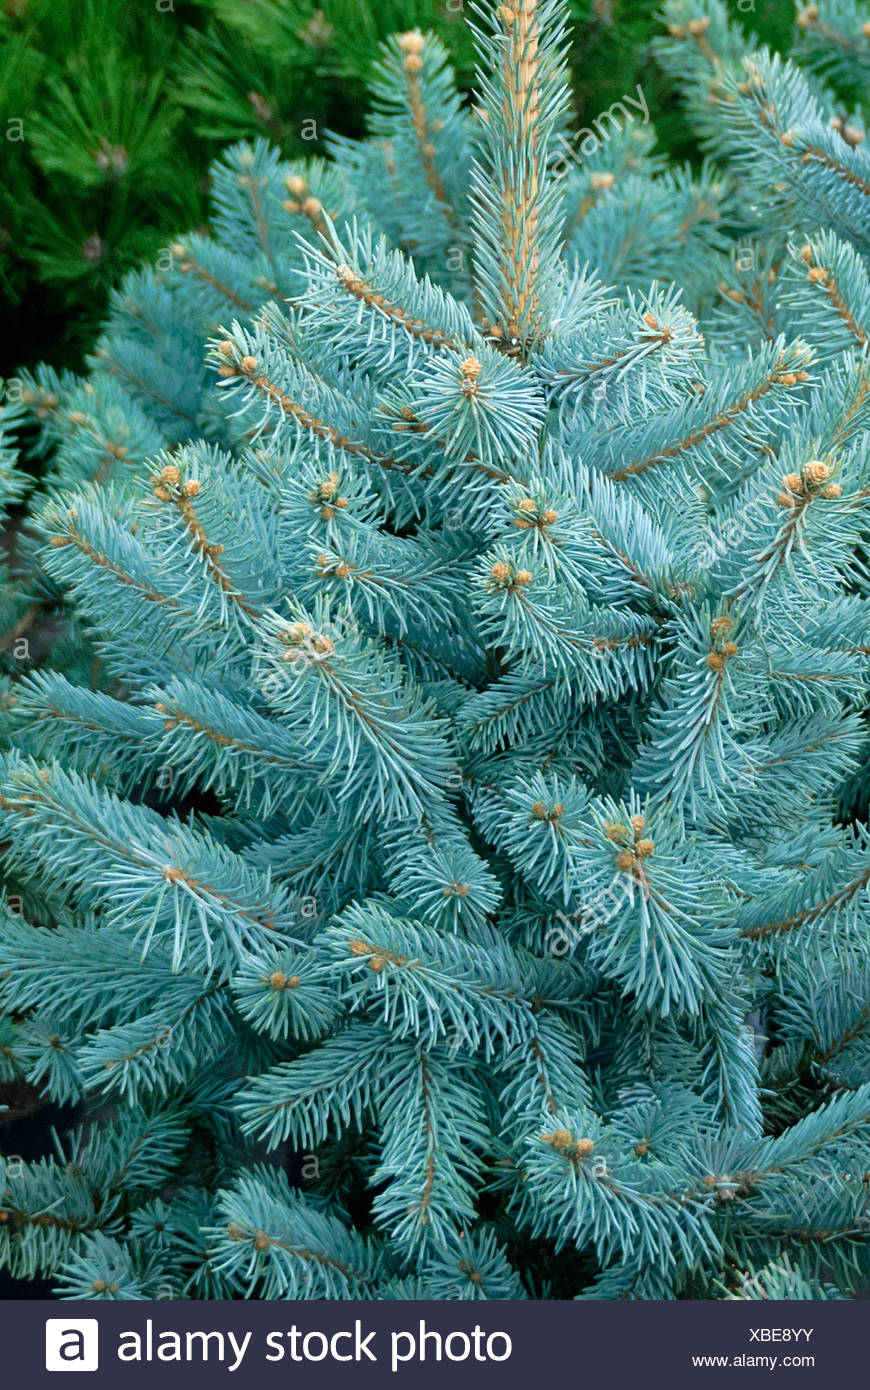 Colorado blue spruce (Picea pungens 'Hoopsii', Picea pungens Hoopsii), cultivar Hoopsii, Mannheim - Stock Image